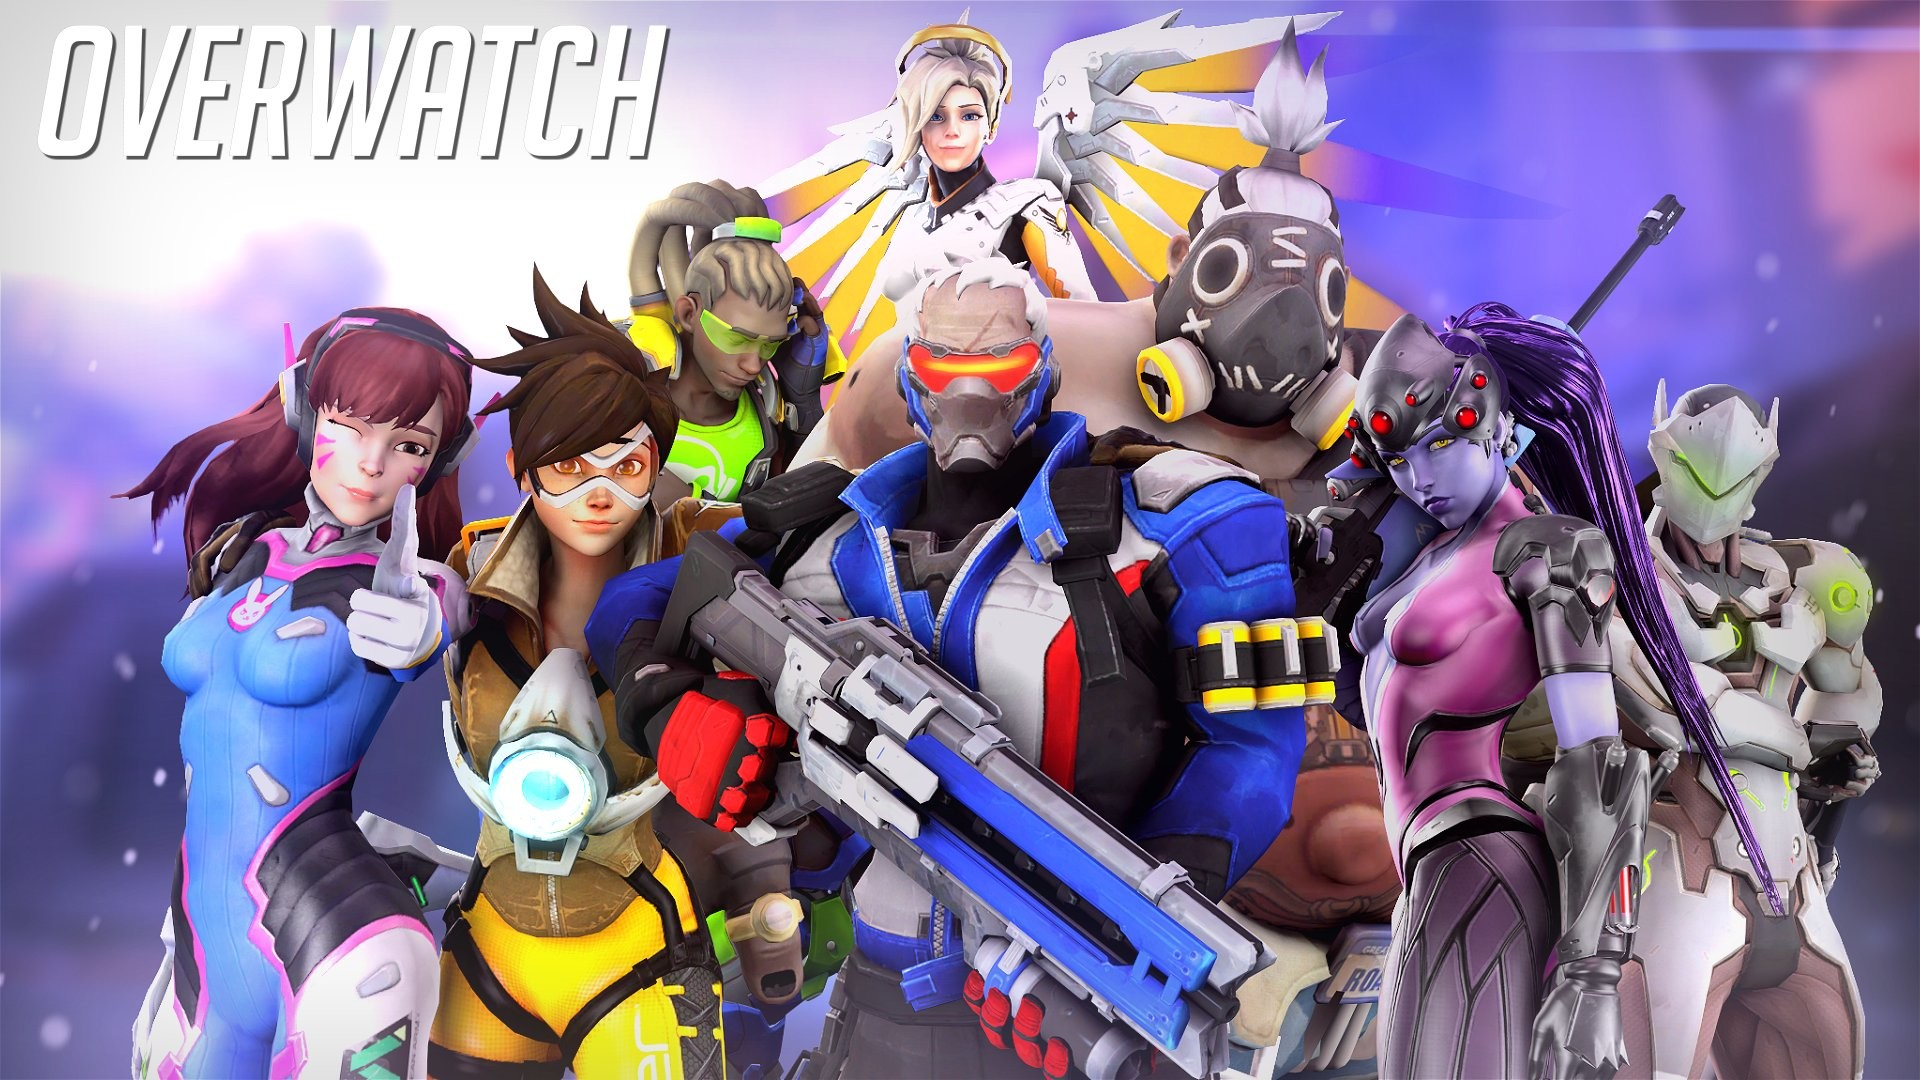 Res: 1920x1080, overwatch,backgrounds, futuristic, anime, fighting, poster, mecha warrior,  shooter, action, scifi, beautiful, fullscreen, fantasy desktop images  Wallpaper ...